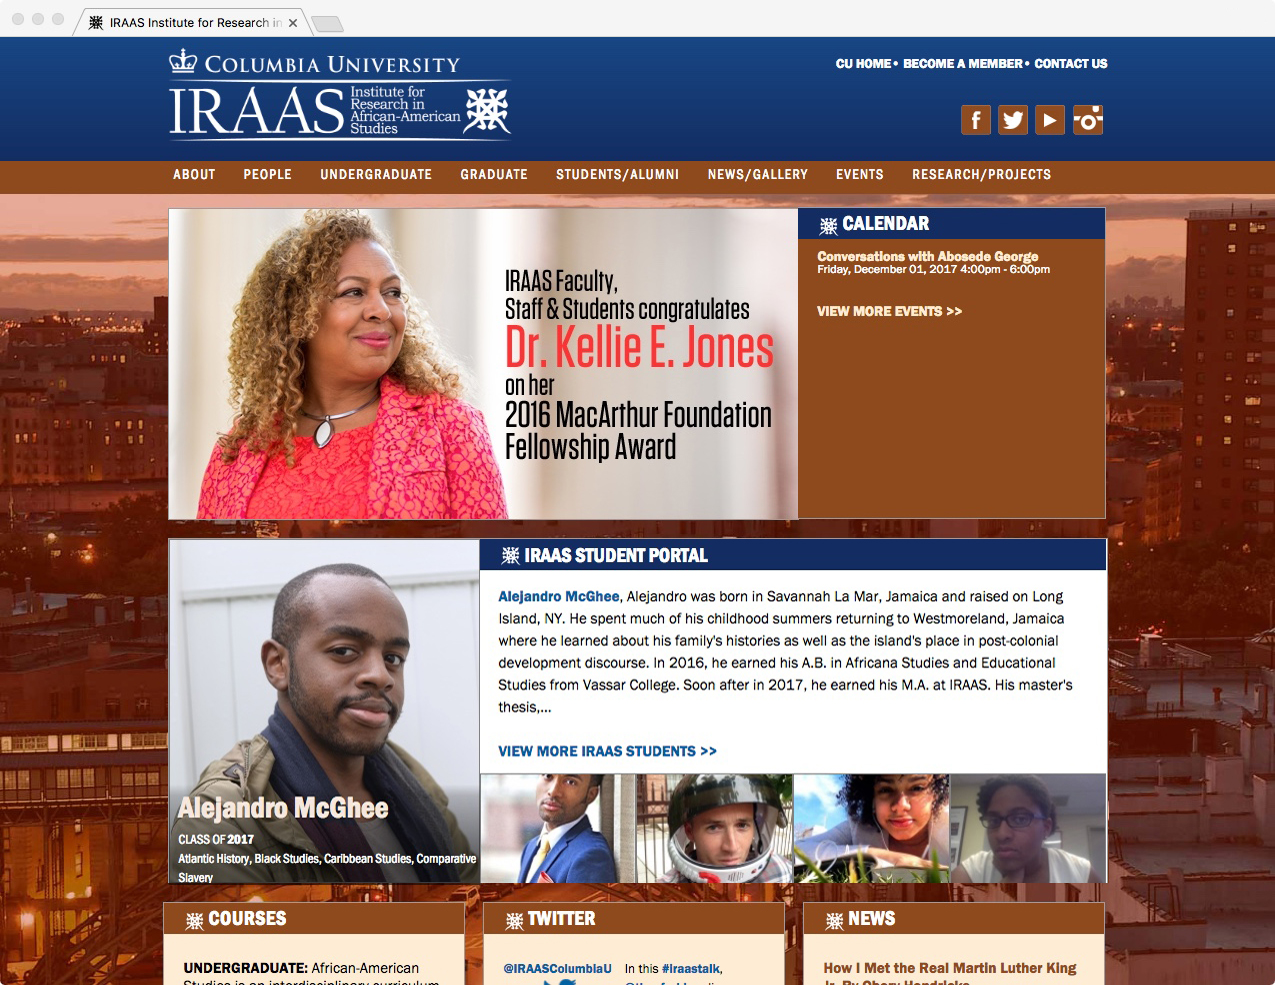 Image of screenshot of Columbia University IRAAS website